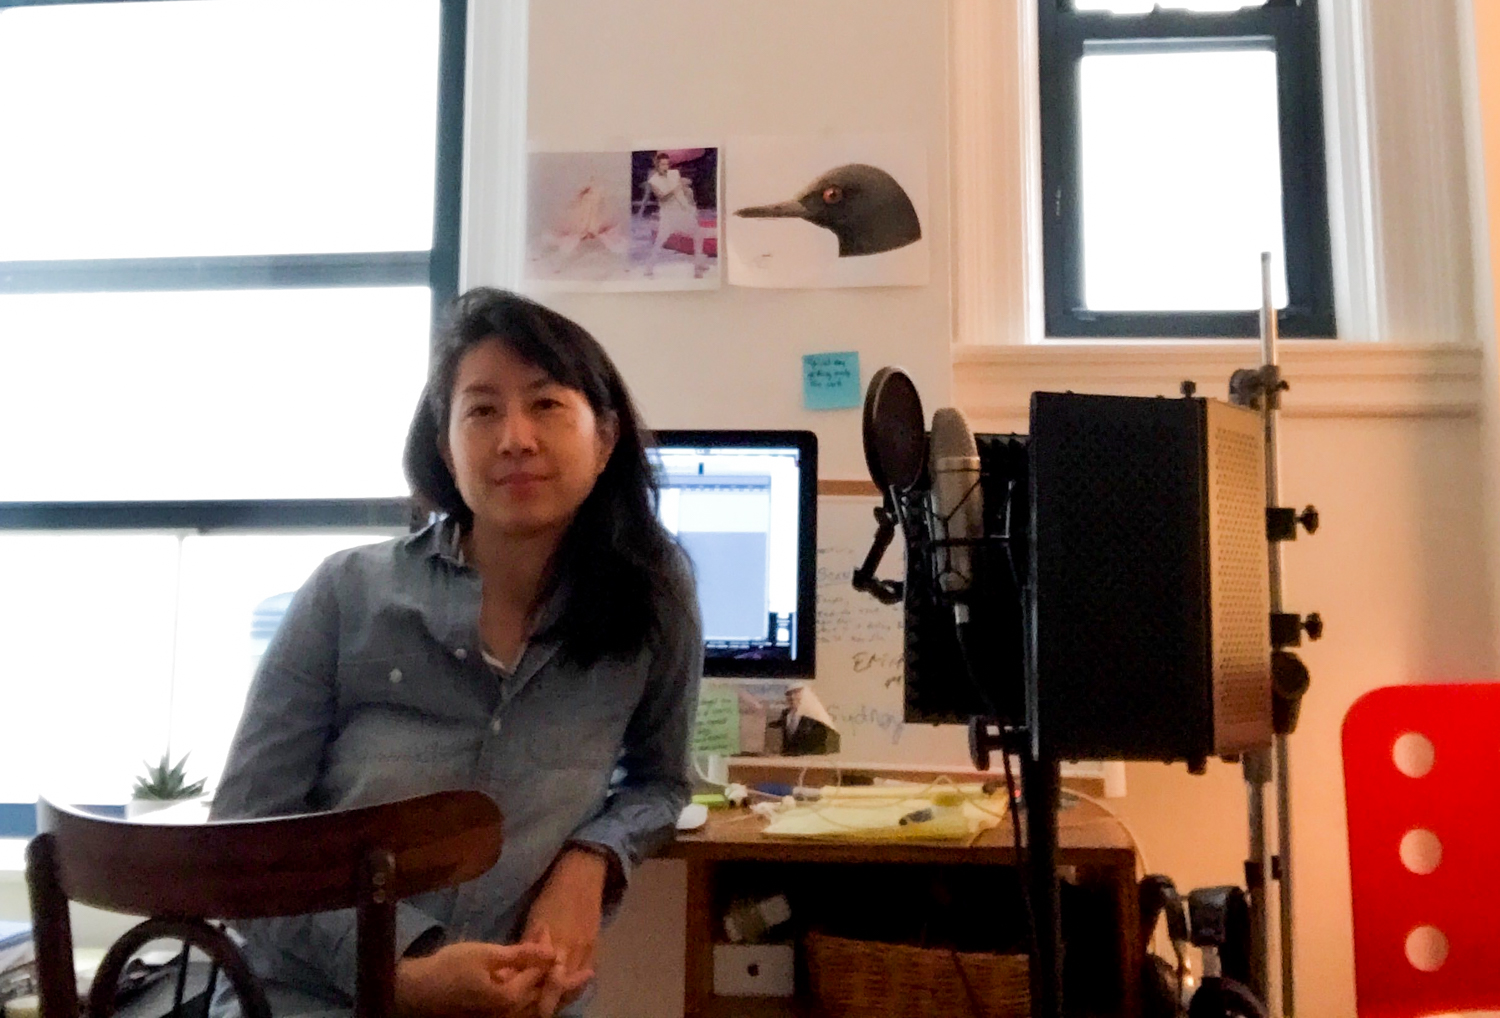 an asian woman sits at a desk at home with a mic stand and microphone next to her